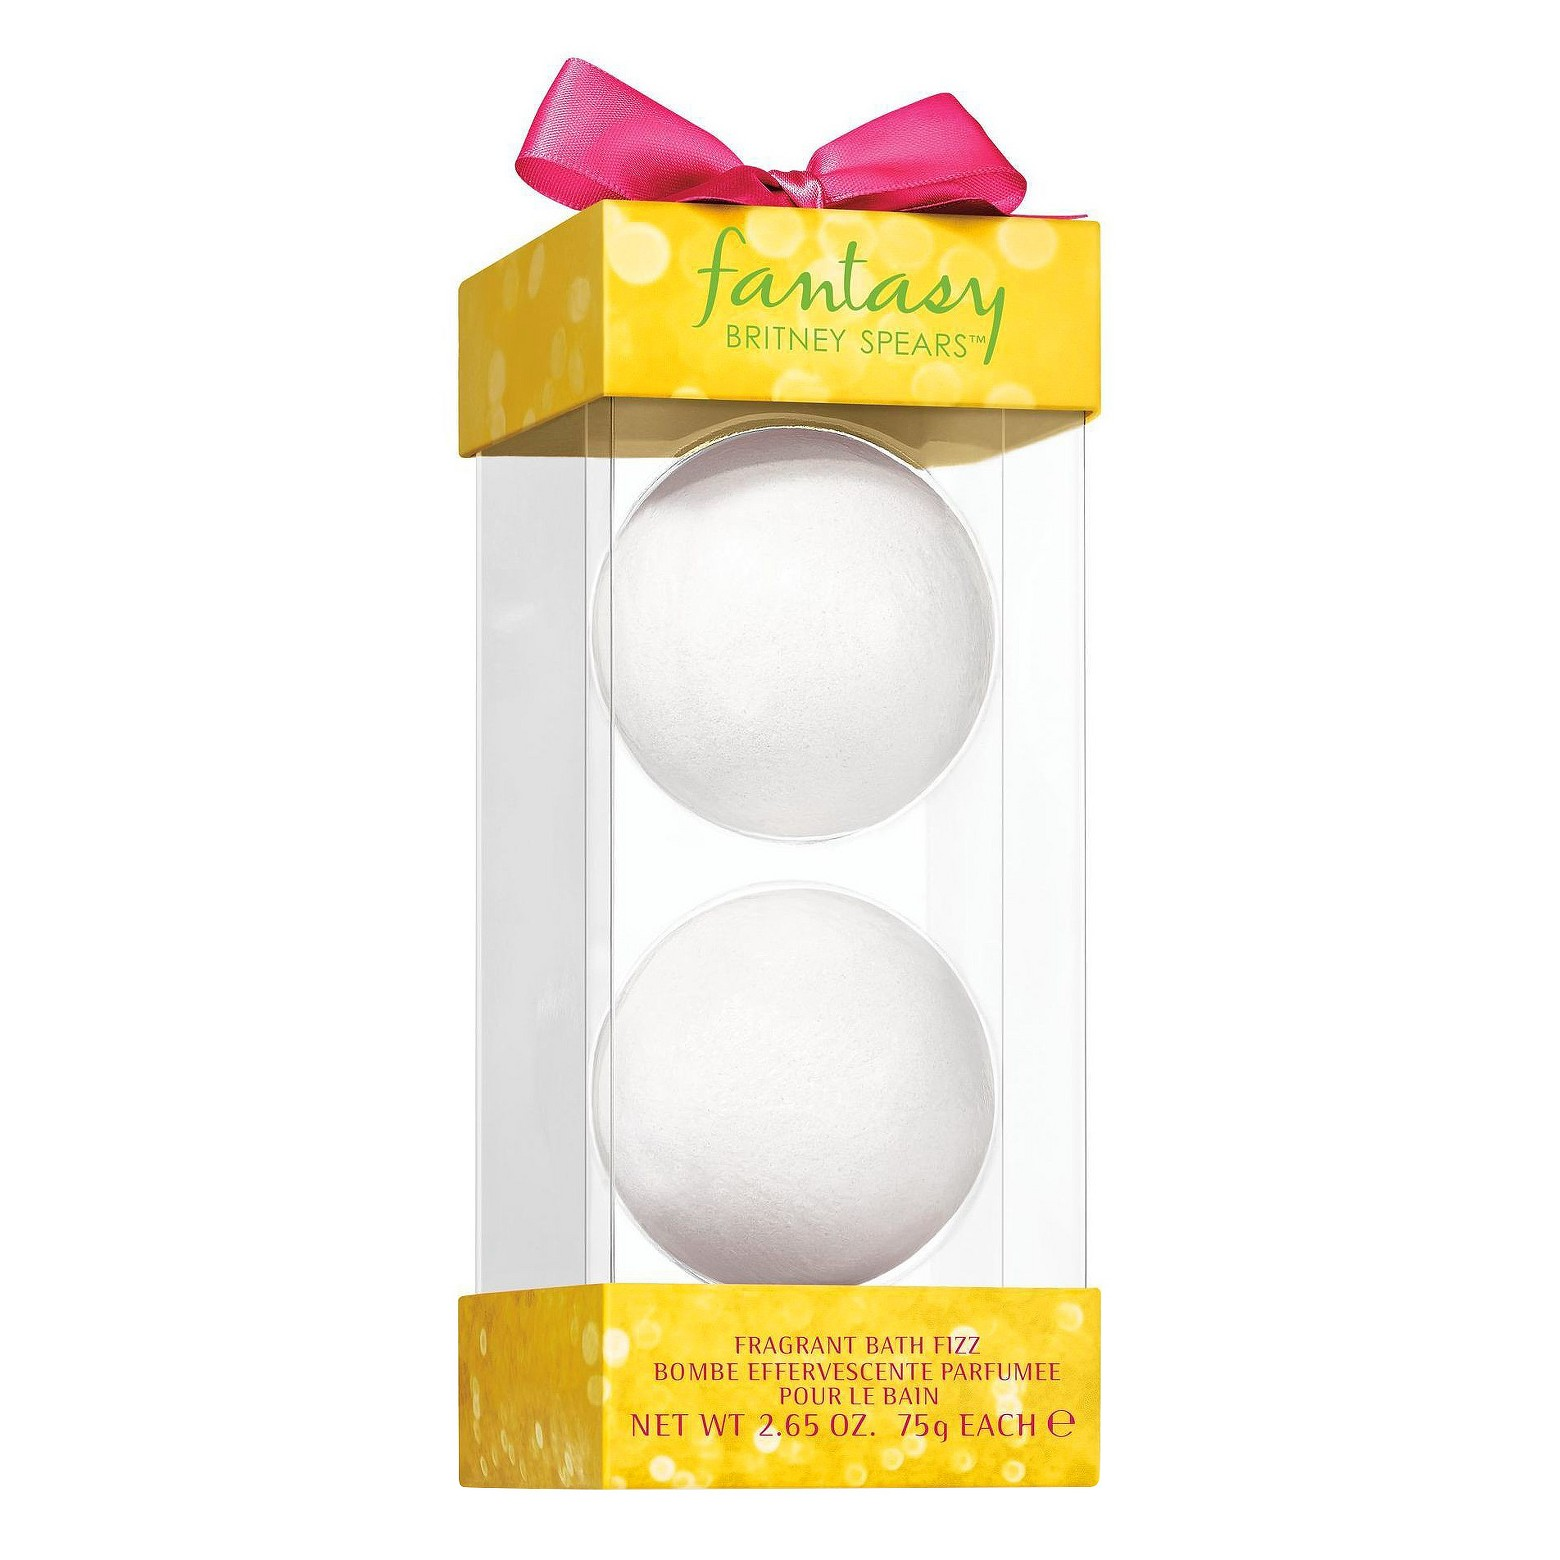 Fantasy by Britney Spears Fragrance Bath Fizz - 2 Pieces  $5.00 at Target.com